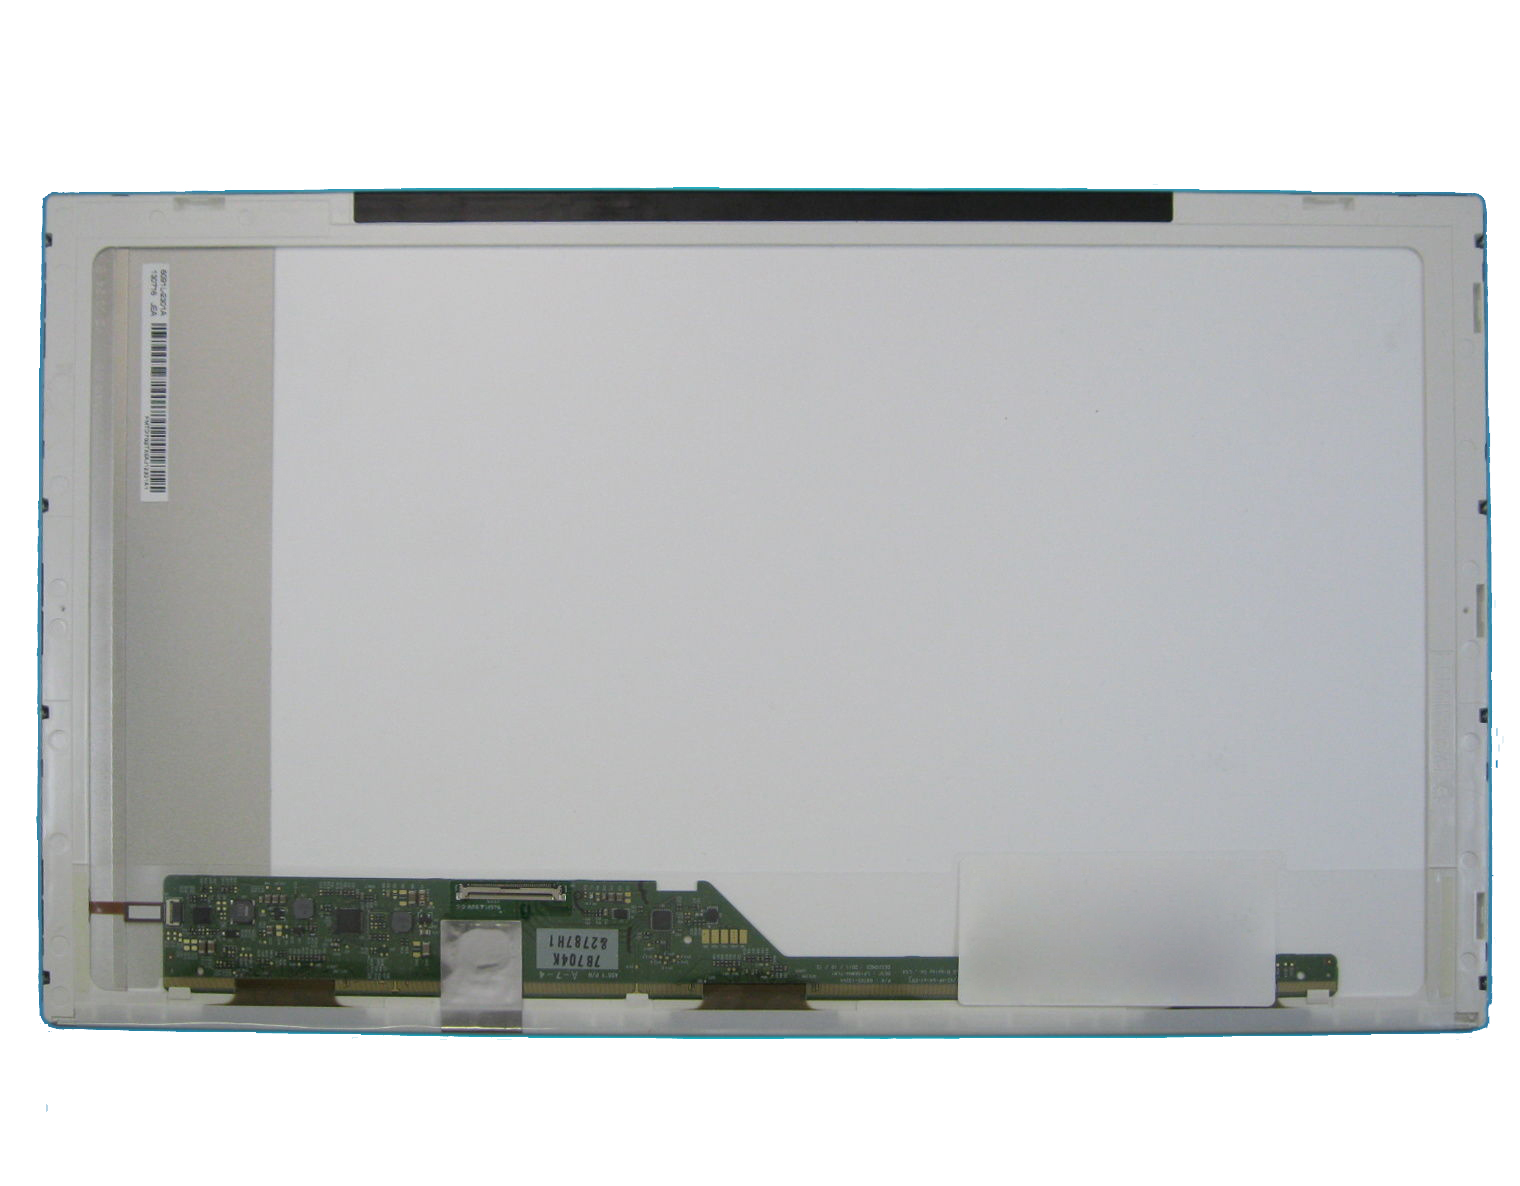 QuYing Laptop LCD Screen For Acer Aspire 5738DG 5738DZG 5738G 5738PG 5738PZ 5738Z 5750 5750G Series (15.6 inch 1366x768 40Pin) quying laptop lcd screen for acer extensa 5235 as5551 series 15 6 inch 1366x768 40pin tk